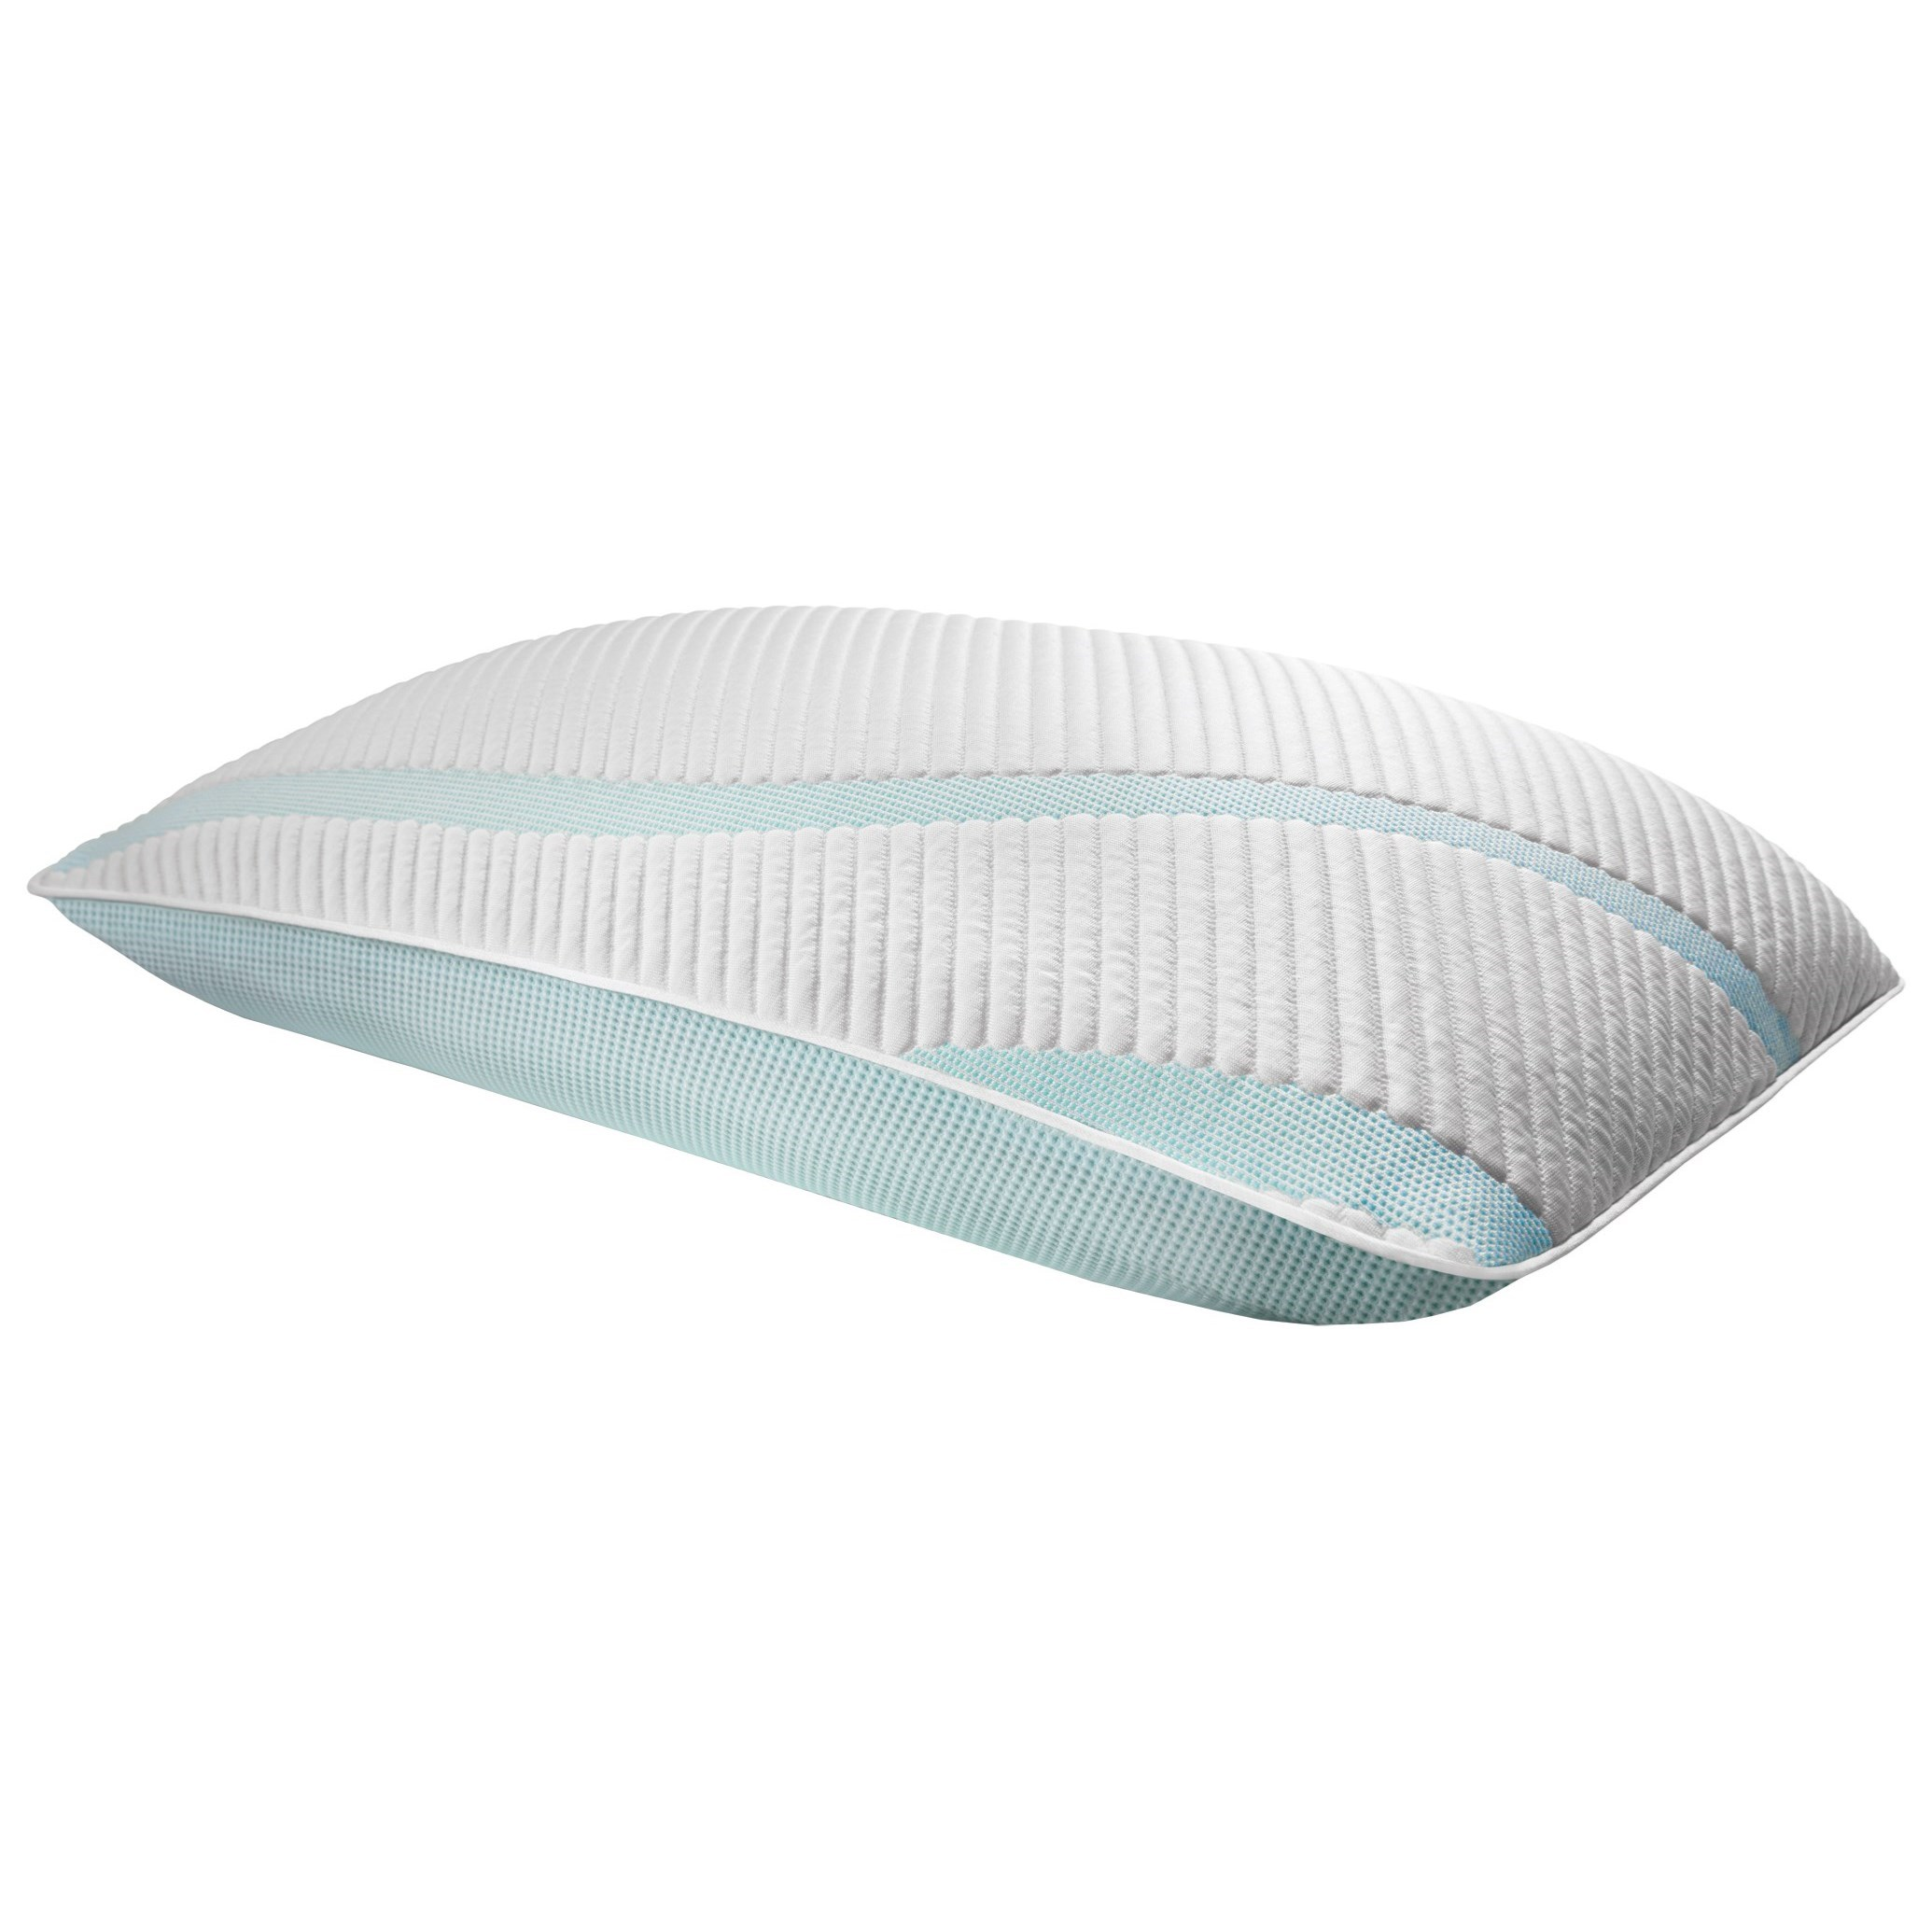 TEMPUR-Adapt Pro-Mid Queen TEMPUR-Adapt Pro-Med + Cooling Pillow by Tempur-Pedic® at SlumberWorld